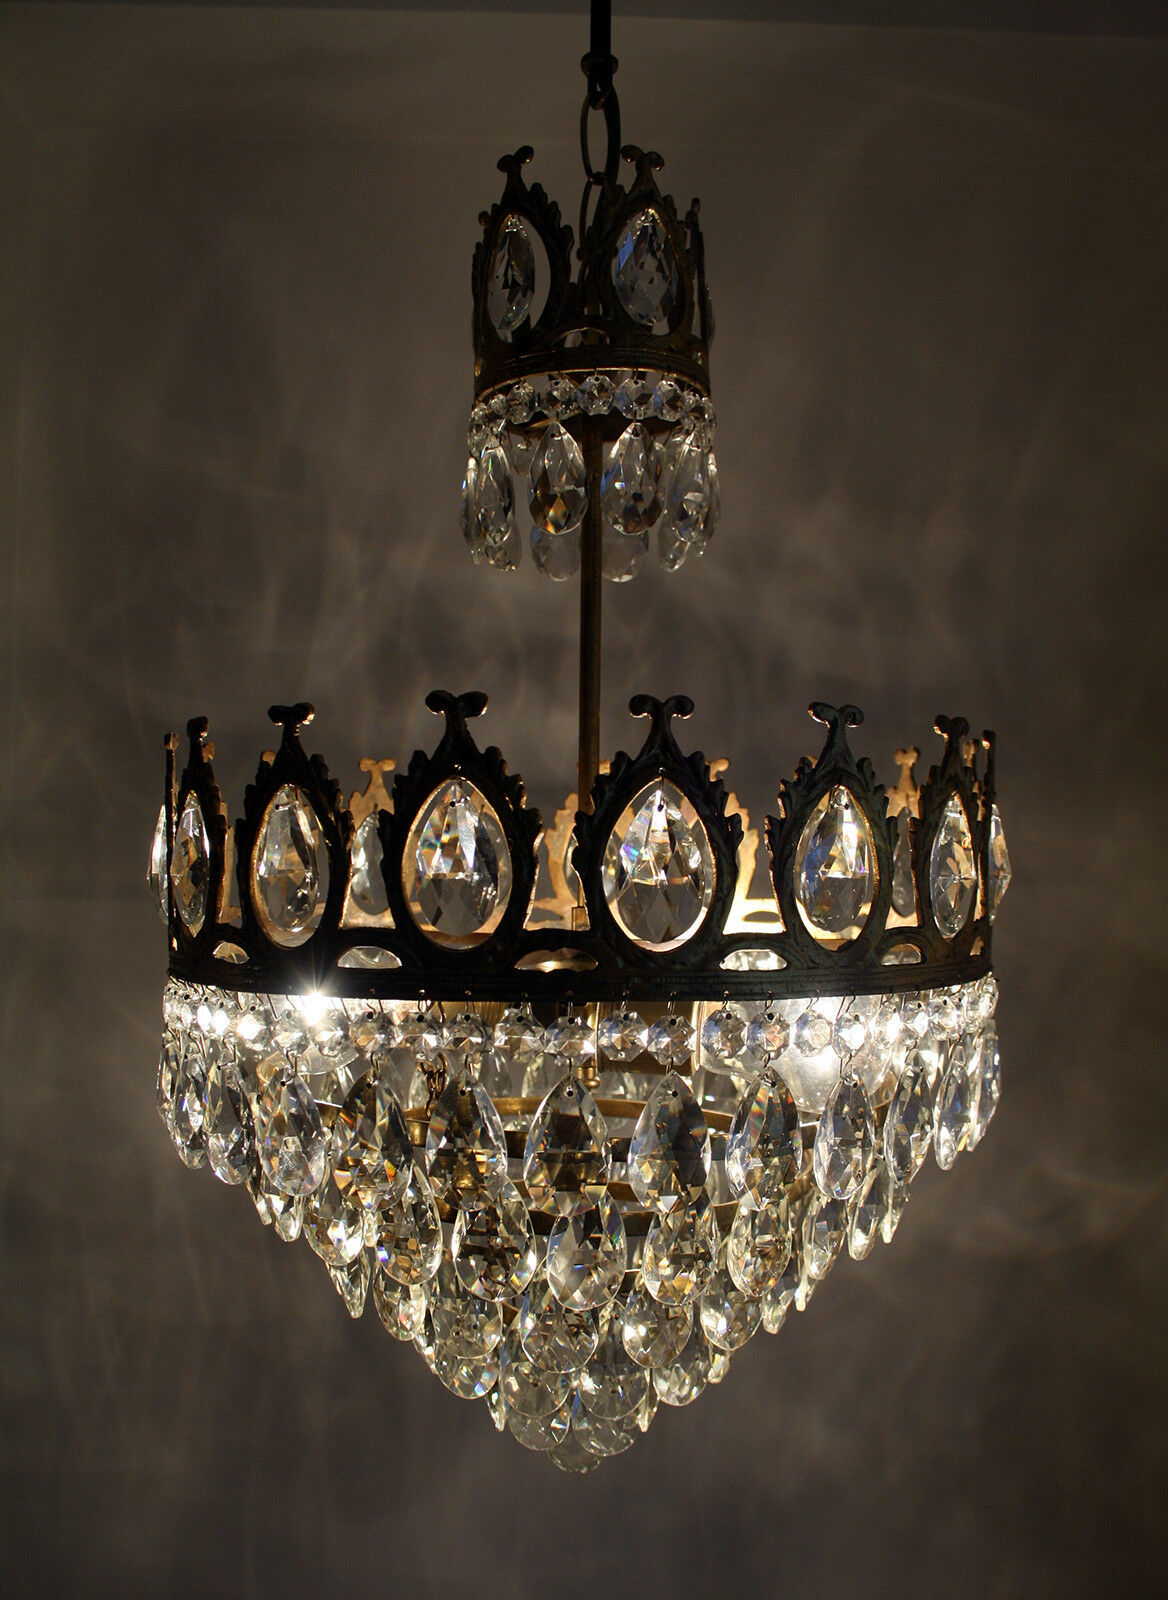 Antique French Basket Style Cast Brass & Crystals Chandelier from 1950's